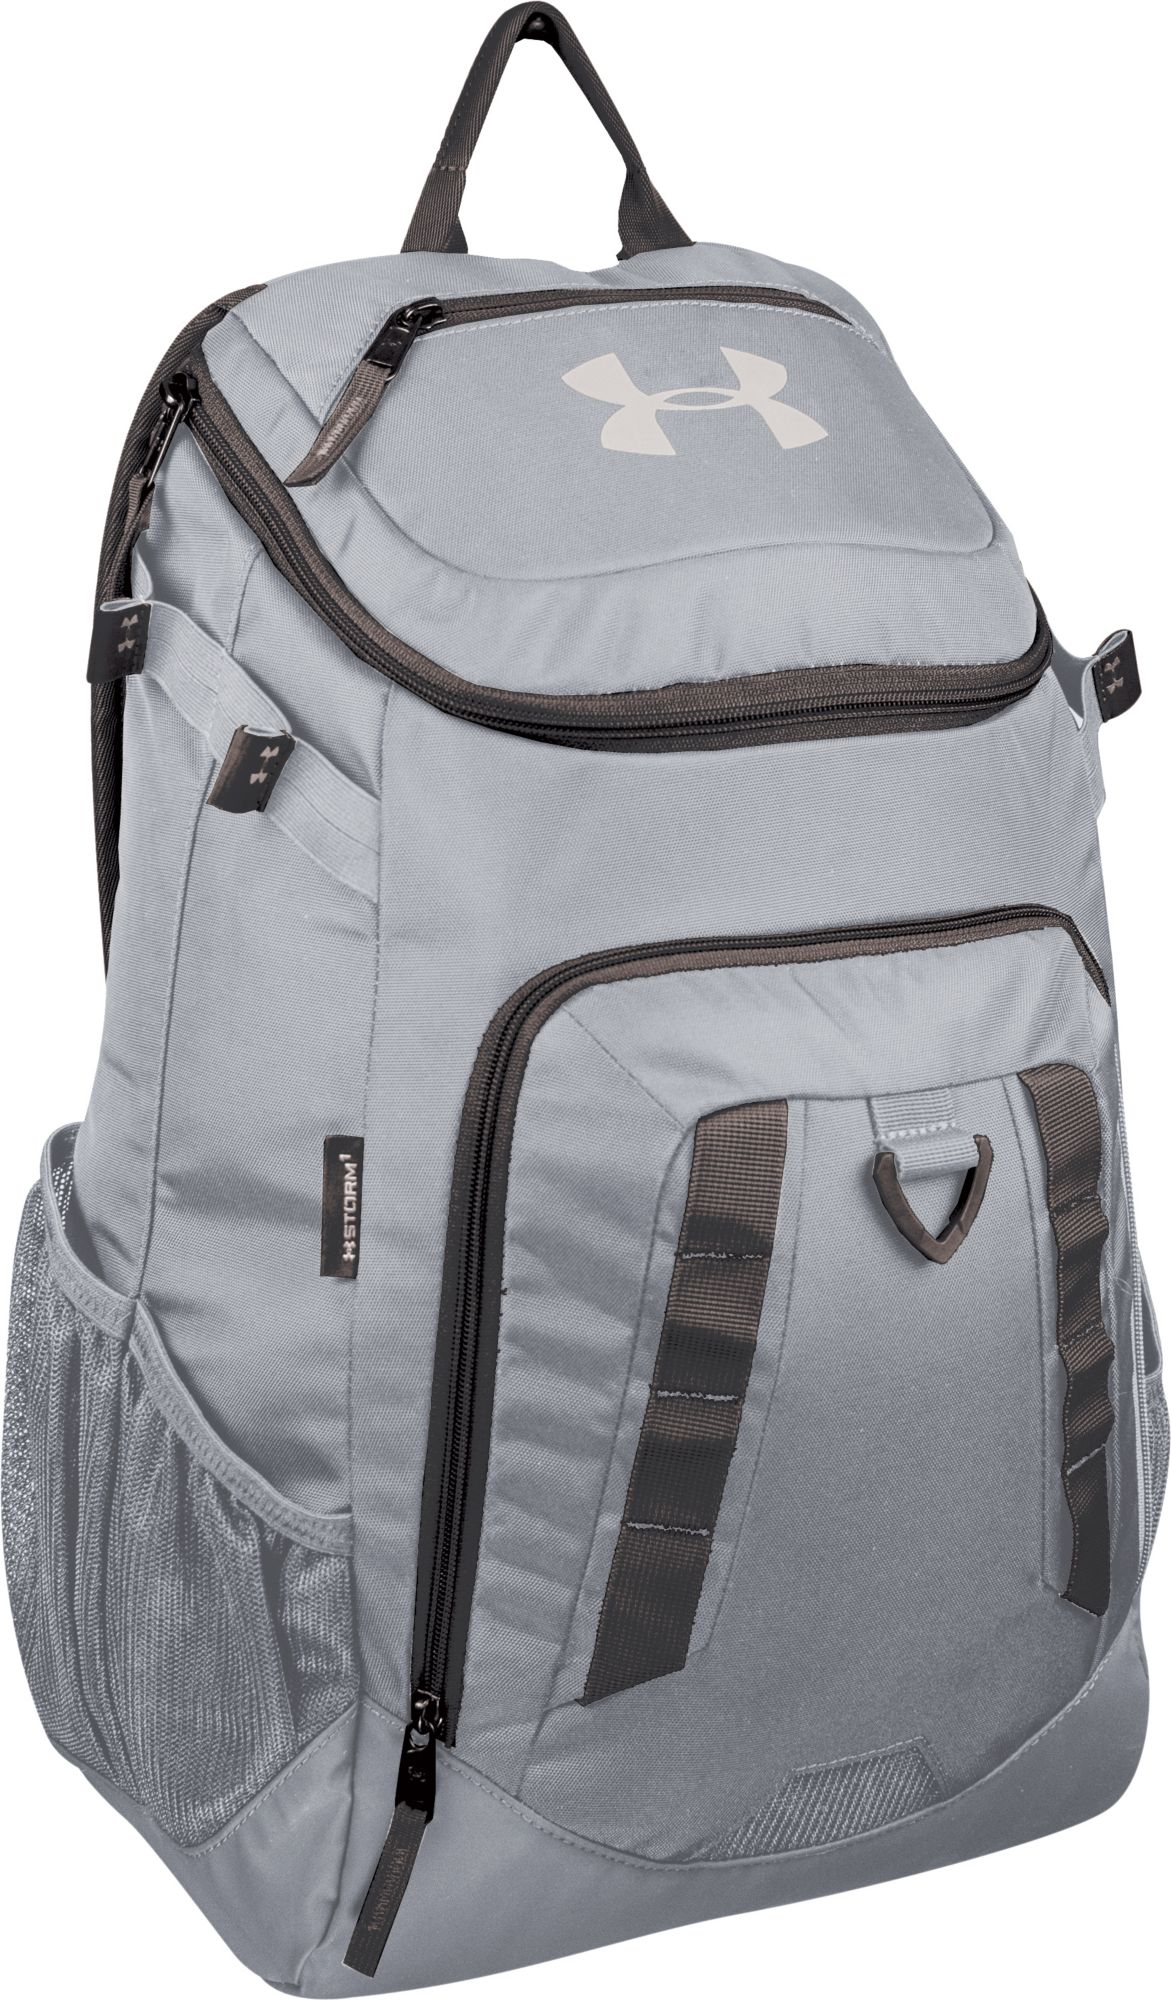 55594b0683e5 Under Armour Gray And White Backpack- Fenix Toulouse Handball